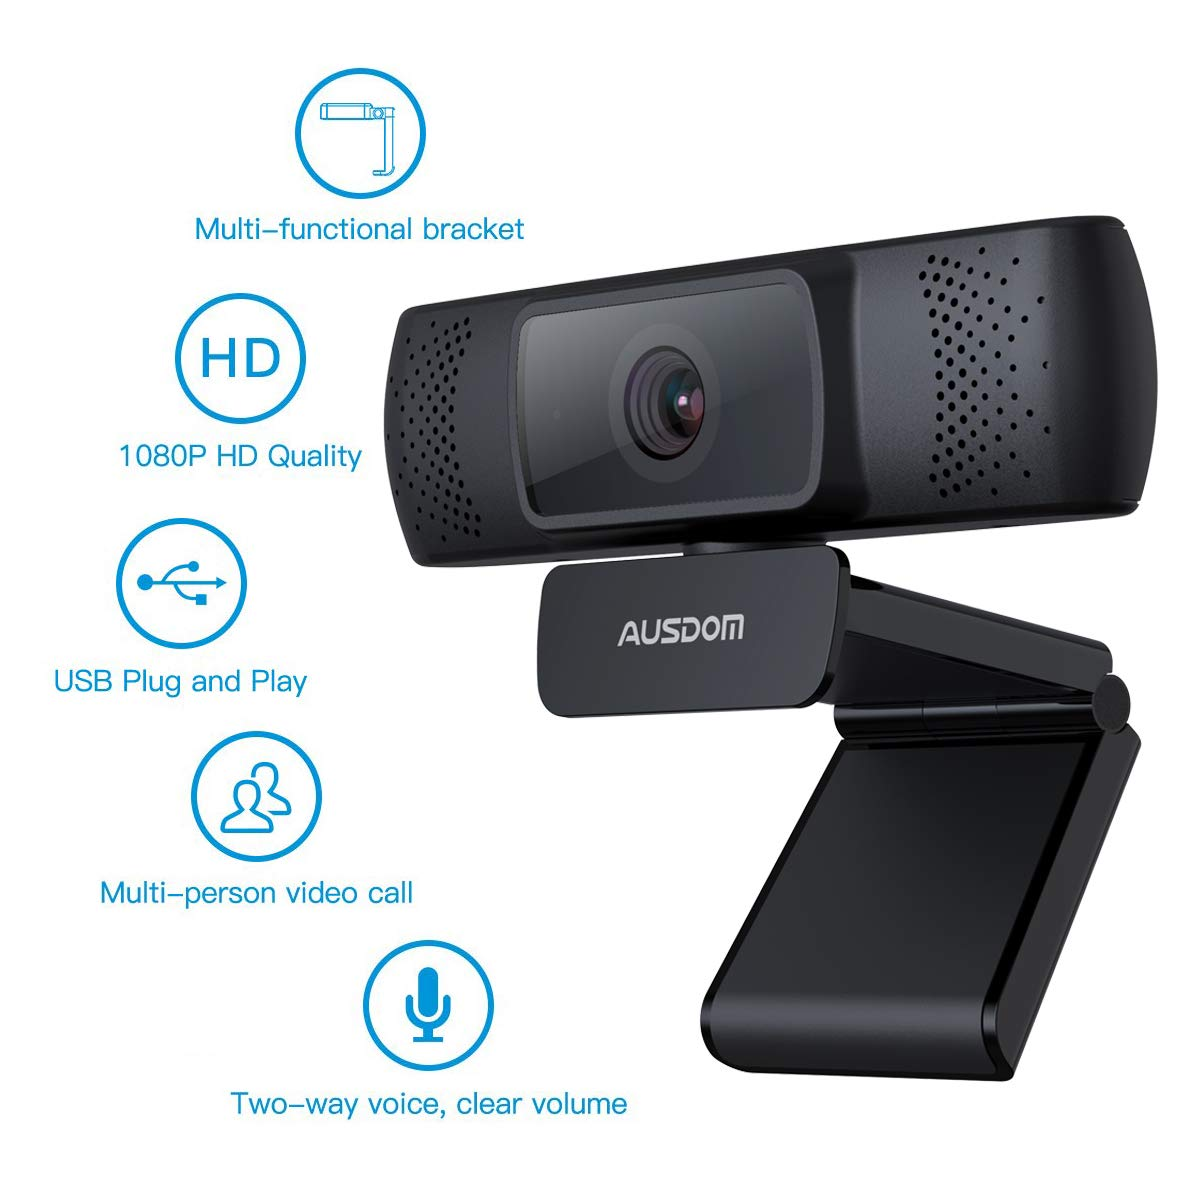 Ausdom Full HD 1080P Webcam for OBS Live, Video Calling and Recording Web Camera with Built-in Noise Reduction Microphone, PC or Laptop Camera for Mixer Twitch Skype Xsplit YouTube